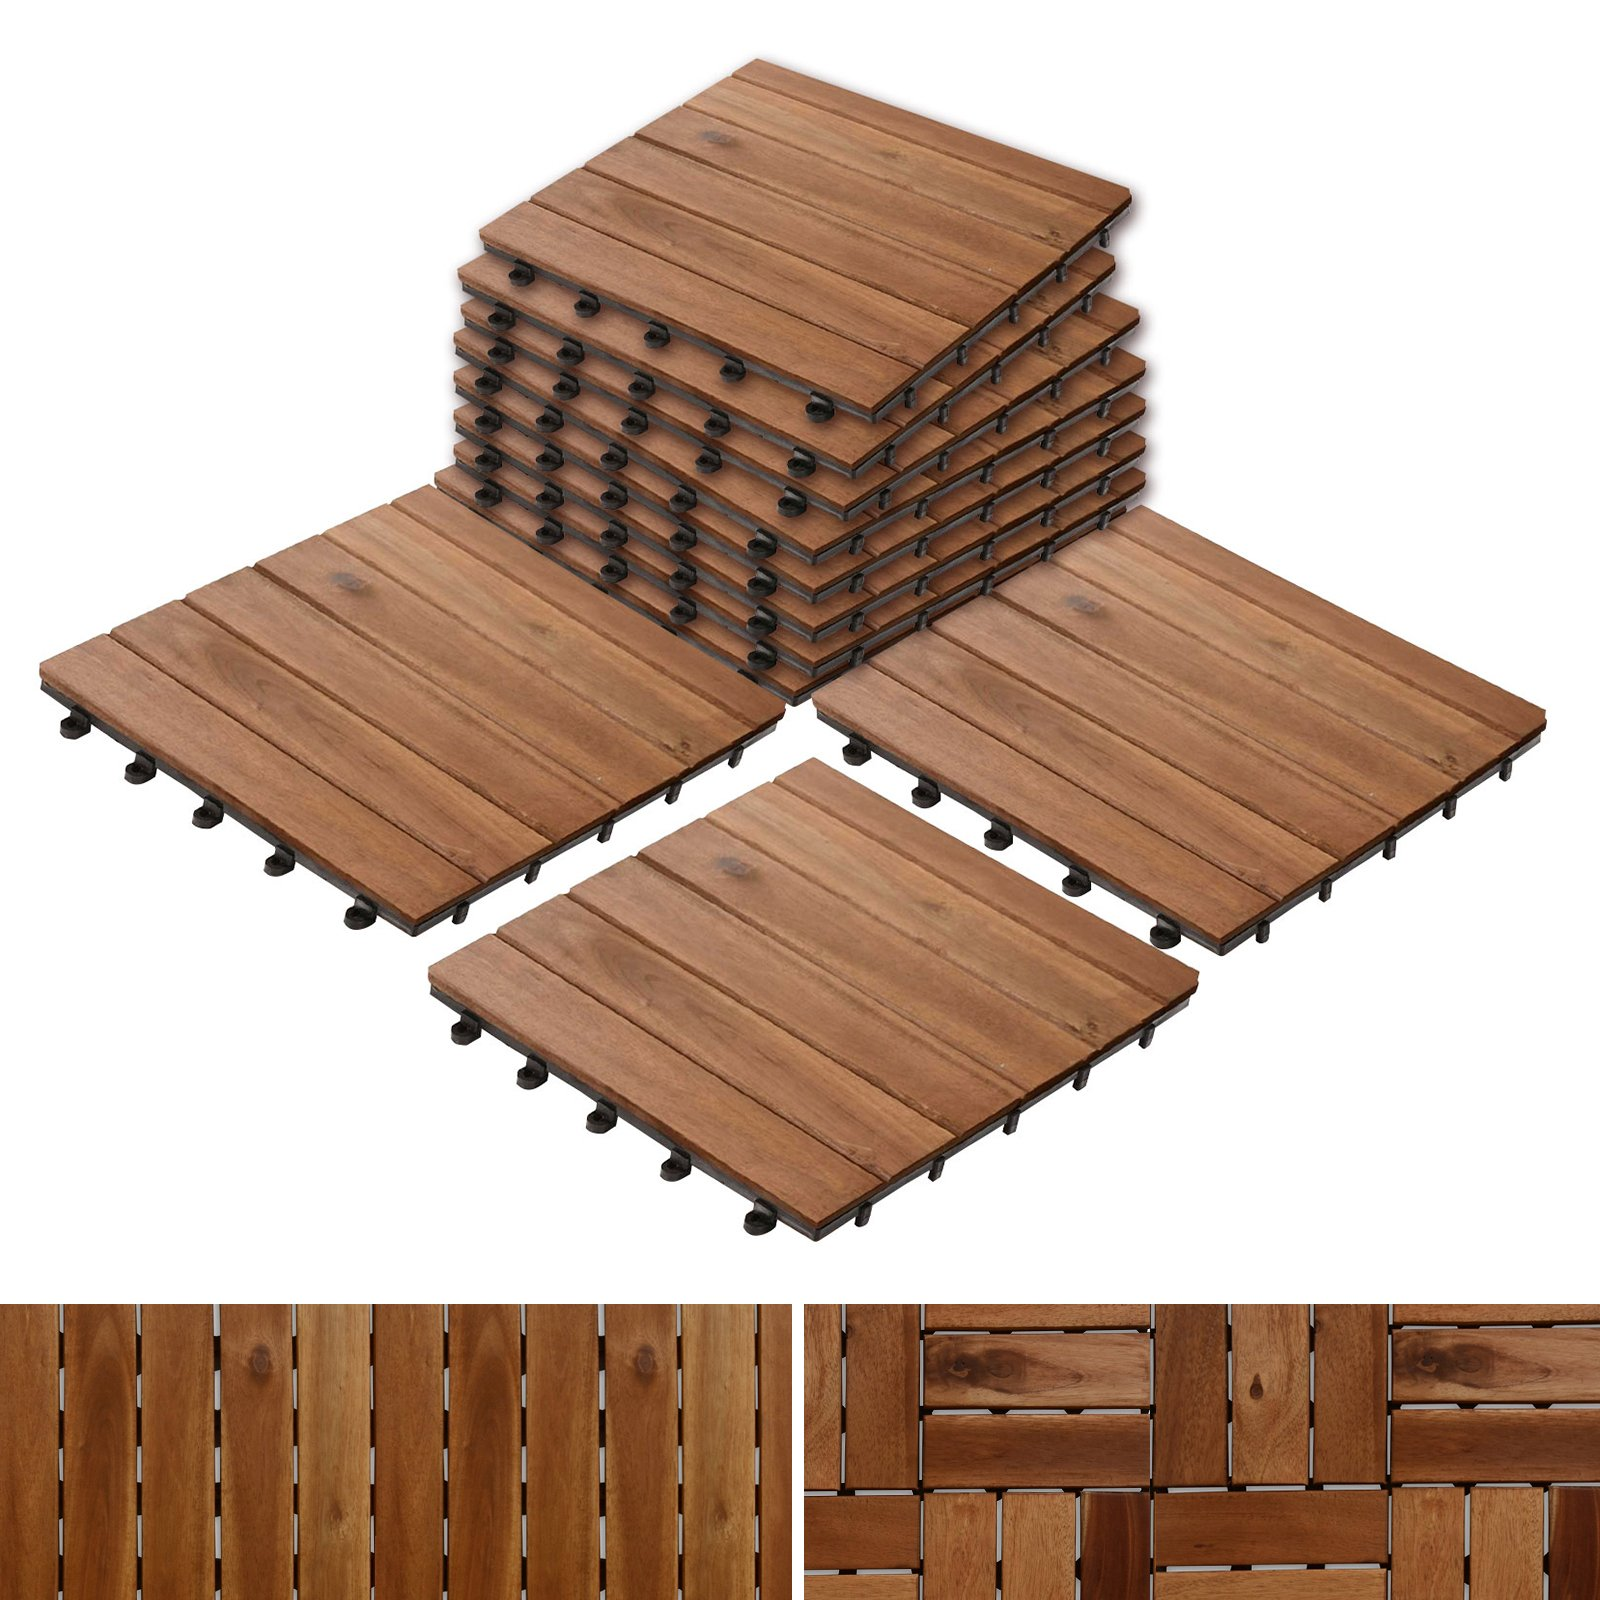 Patio Pavers | Composite Decking Flooring And Deck Tiles | Acacia Wood |  Suitable For Indoor And Outdoor Applications | Stripe Pattern | 12x12  Inches   Pack ...